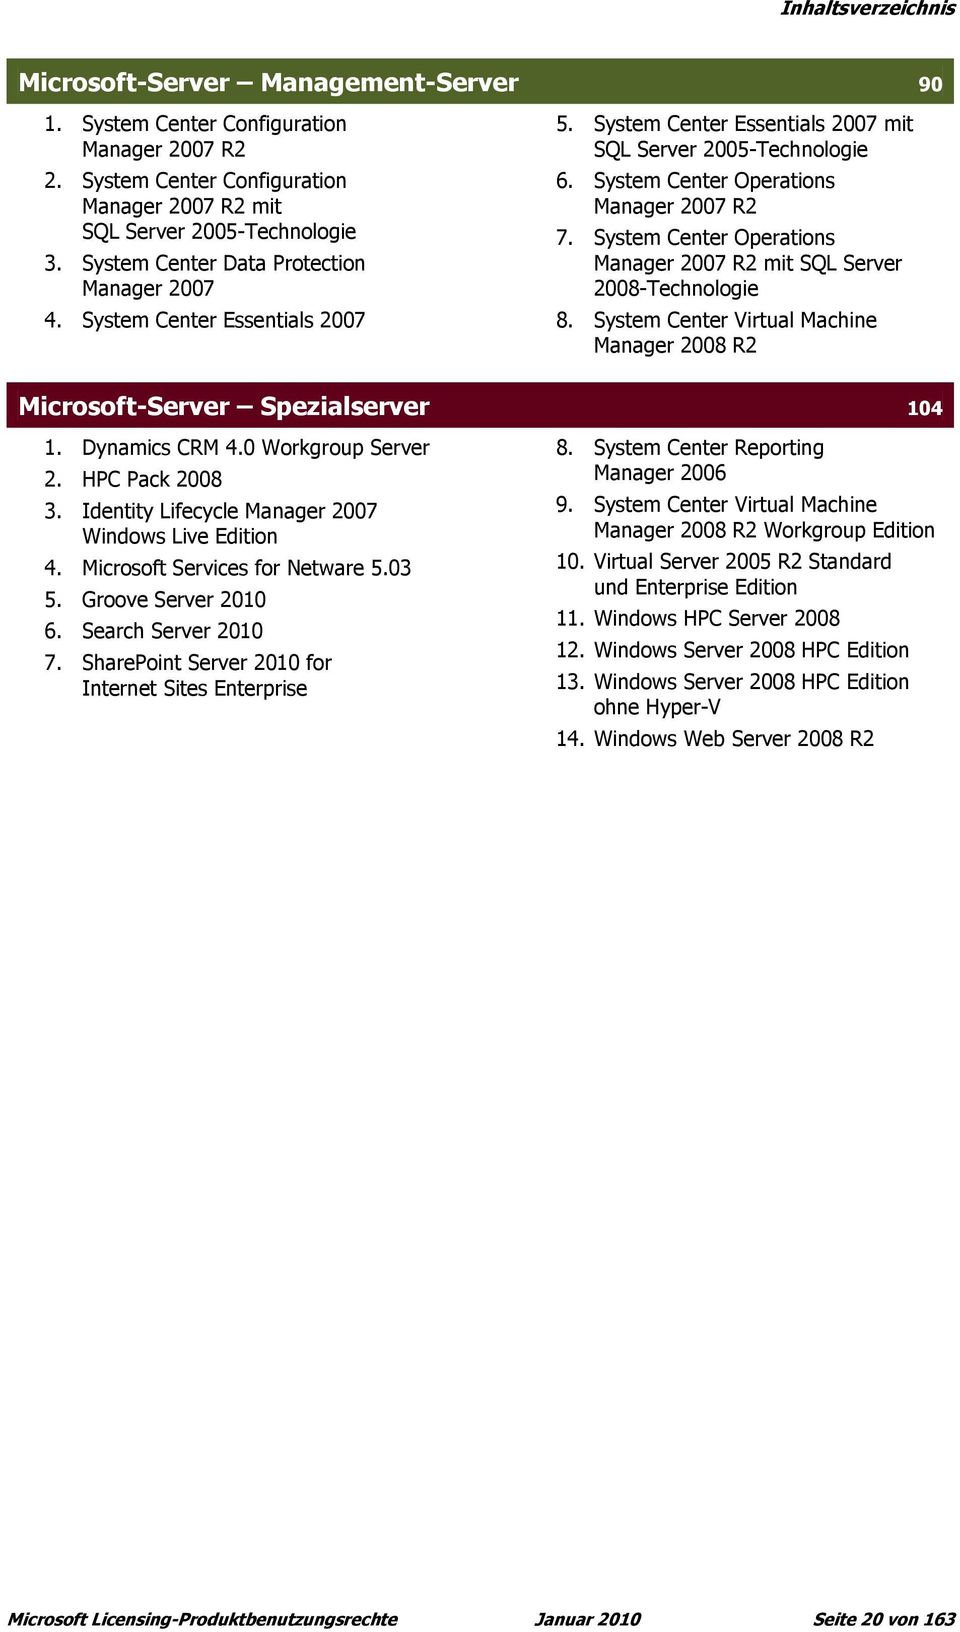 System Center Operations Manager 2007 R2 mit SQL Server 2008-Technologie 8. System Center Virtual Machine Manager 2008 R2 Microsoft-Server Spezialserver 104 1. Dynamics CRM 4.0 Workgroup Server 2.